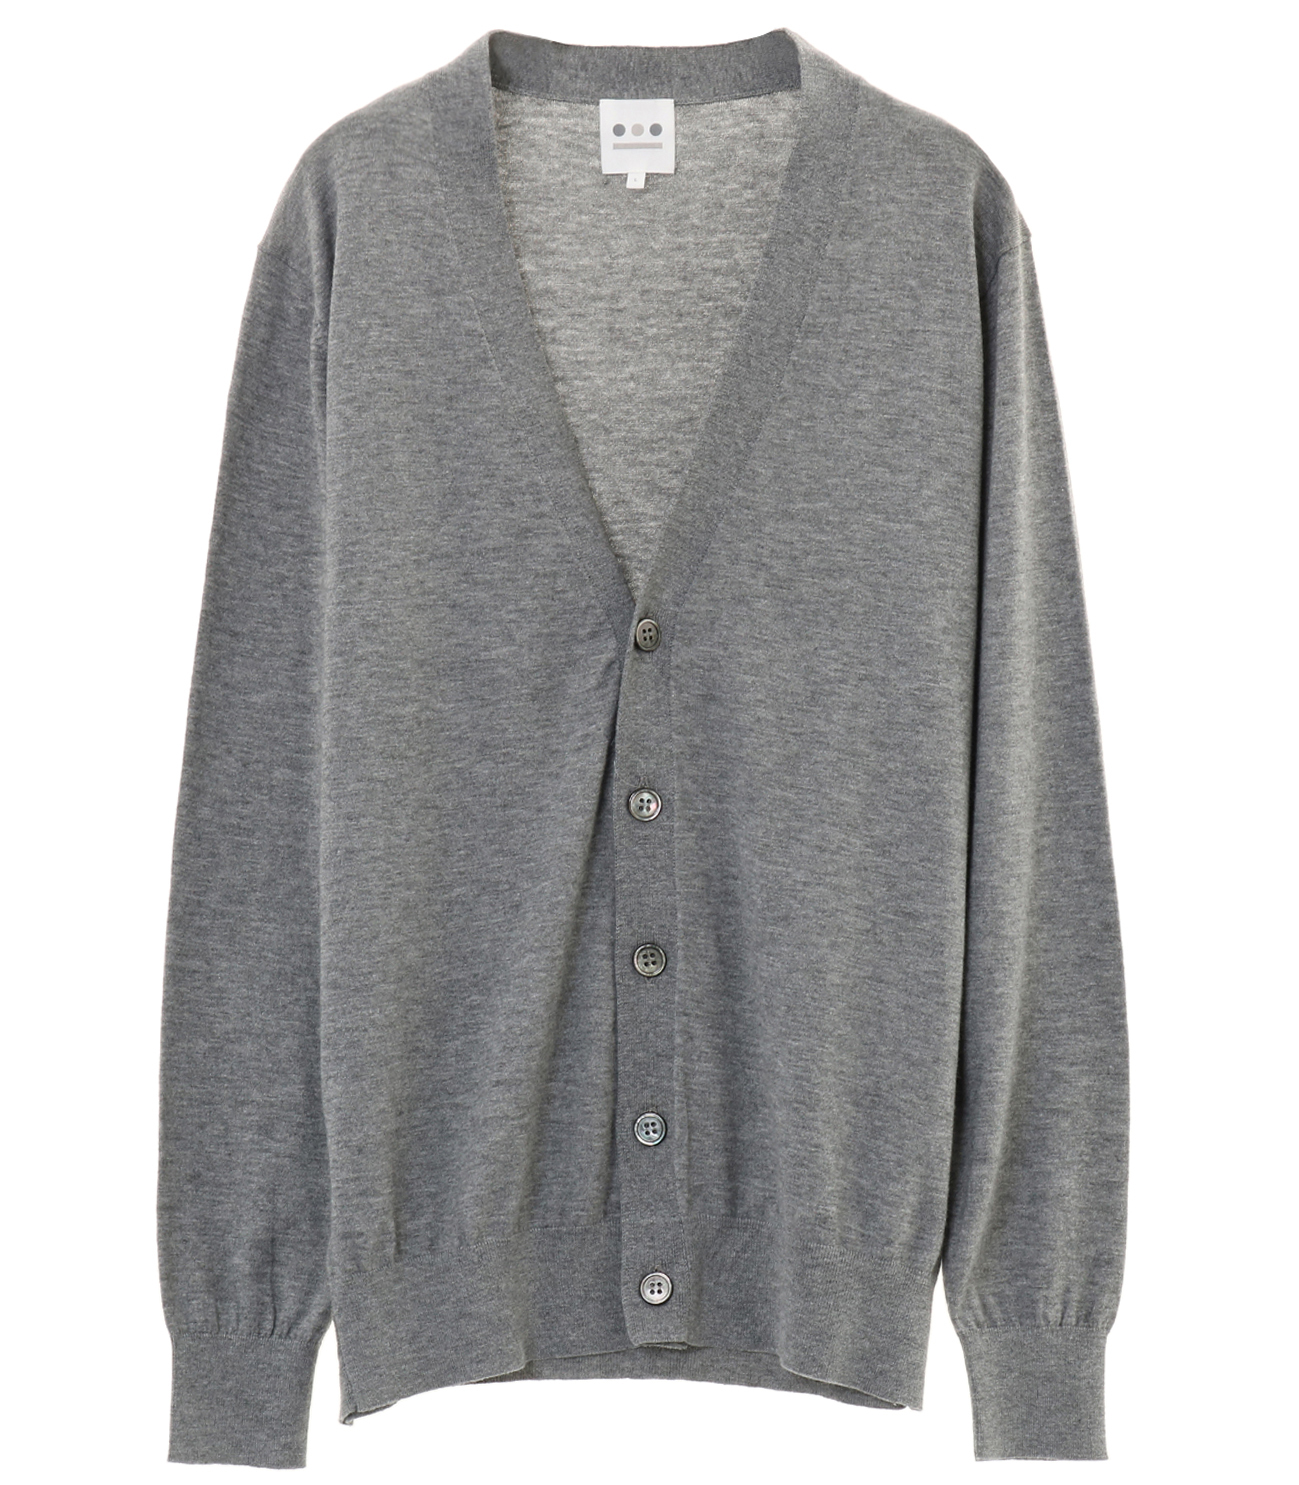 cotton wool l/s cardigan 詳細画像 grey 1